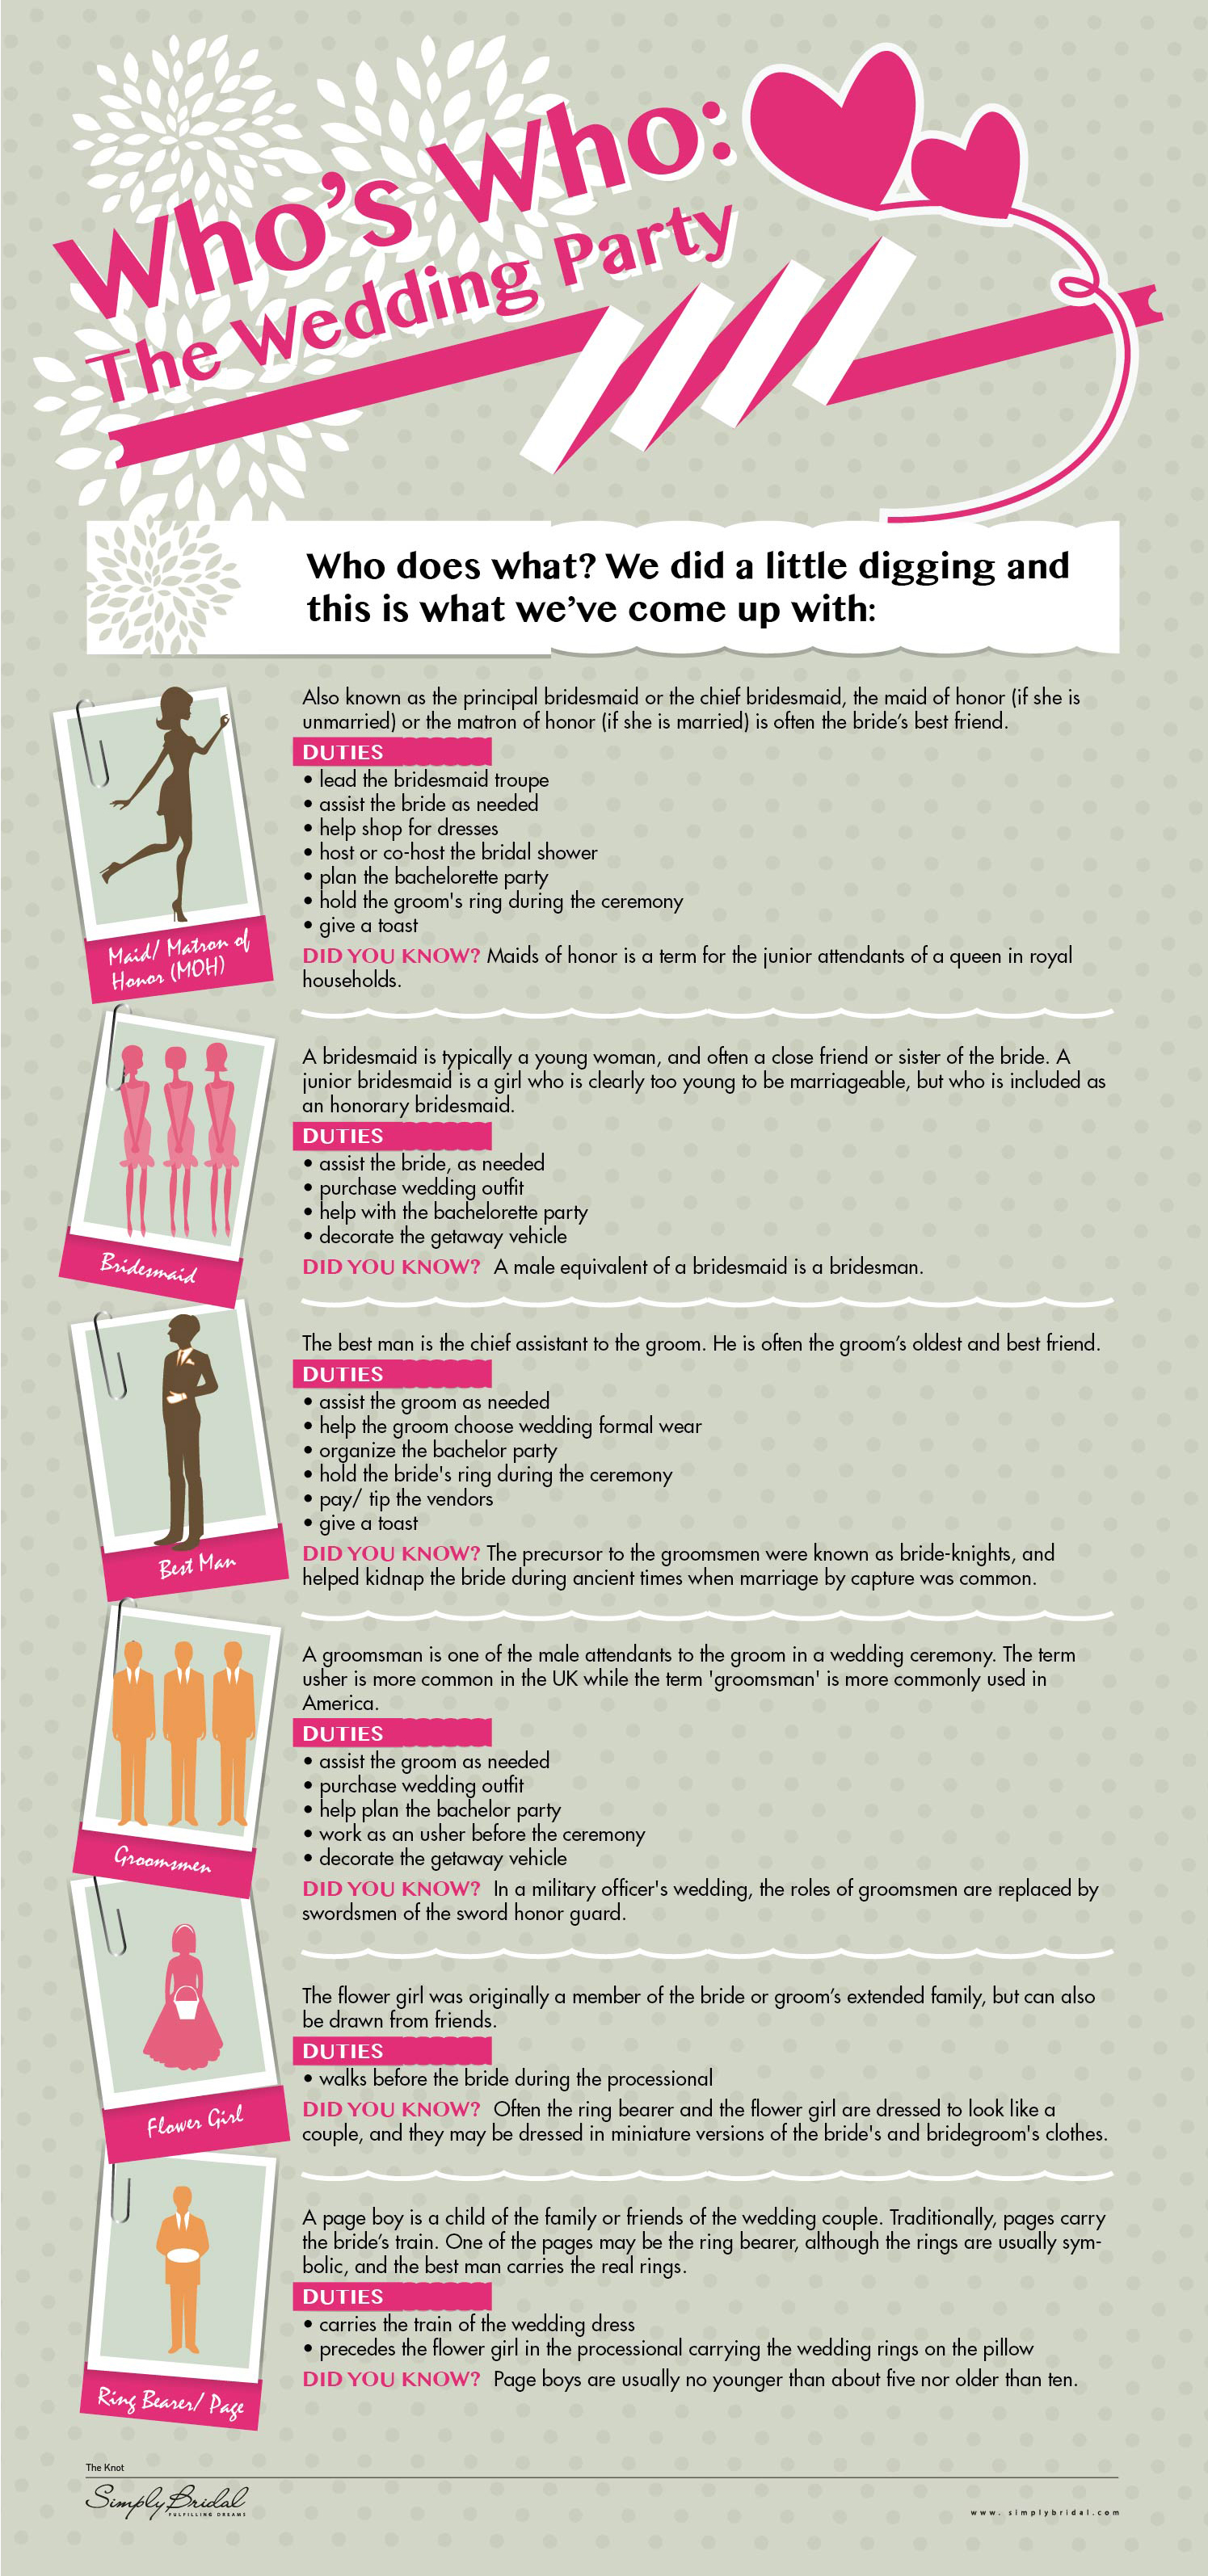 Who S Who The Wedding Party Infographic Infographic List